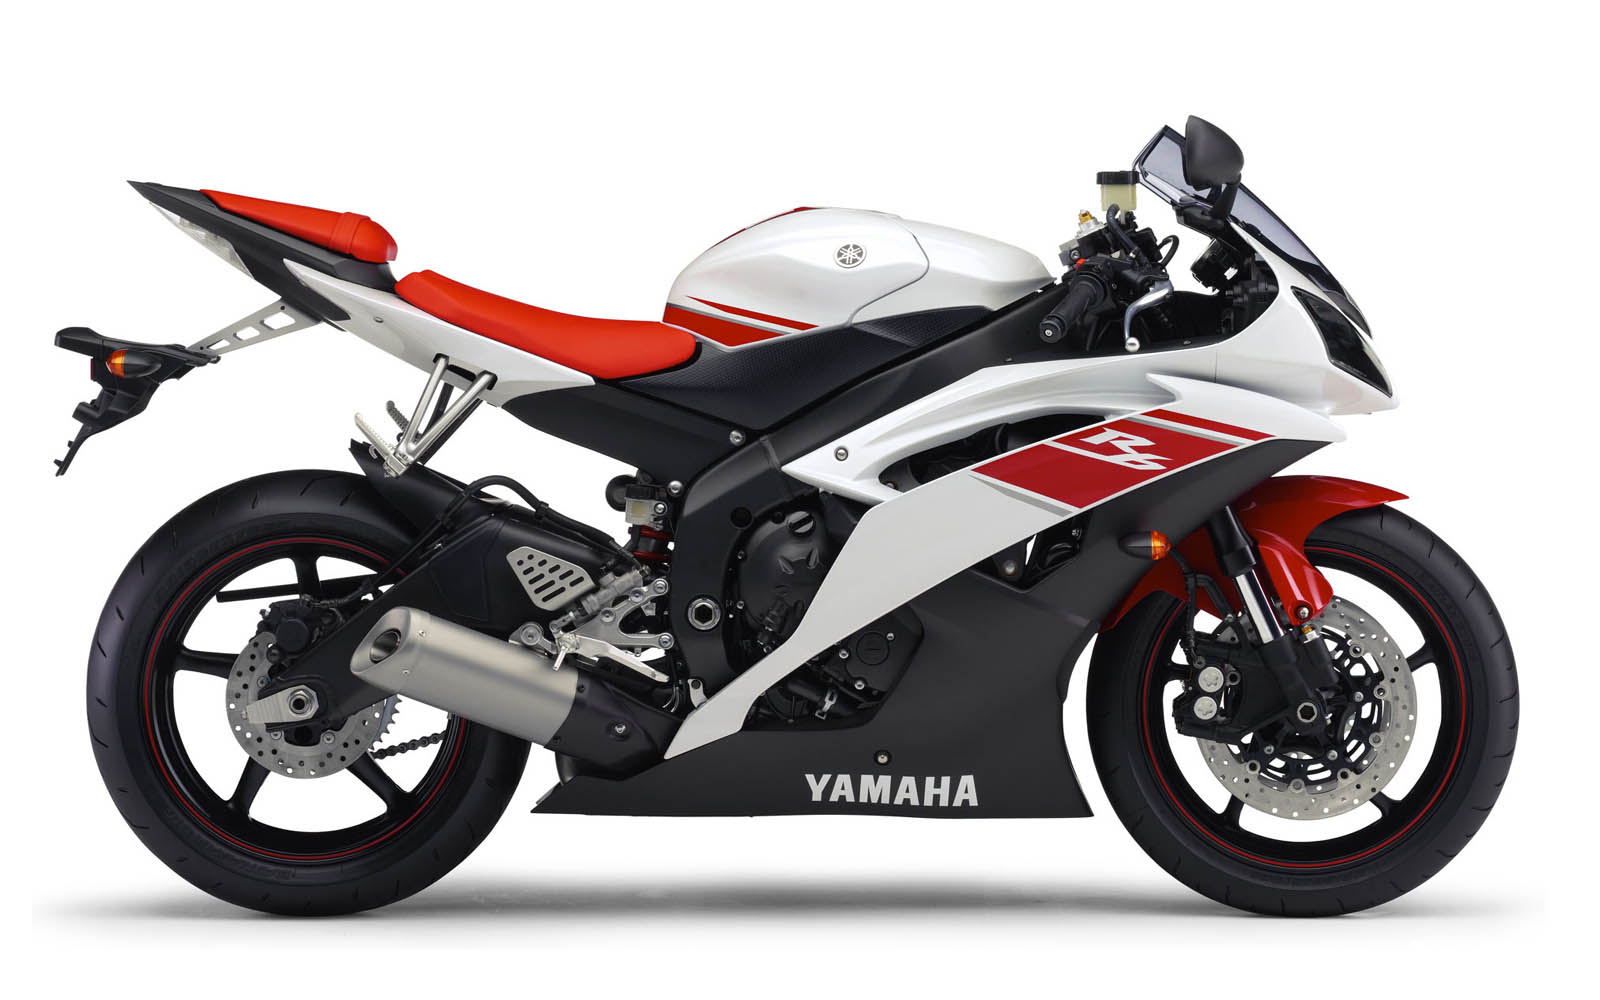 wallpapers Yamaha R6 Bike Wallpapers 1600x1000